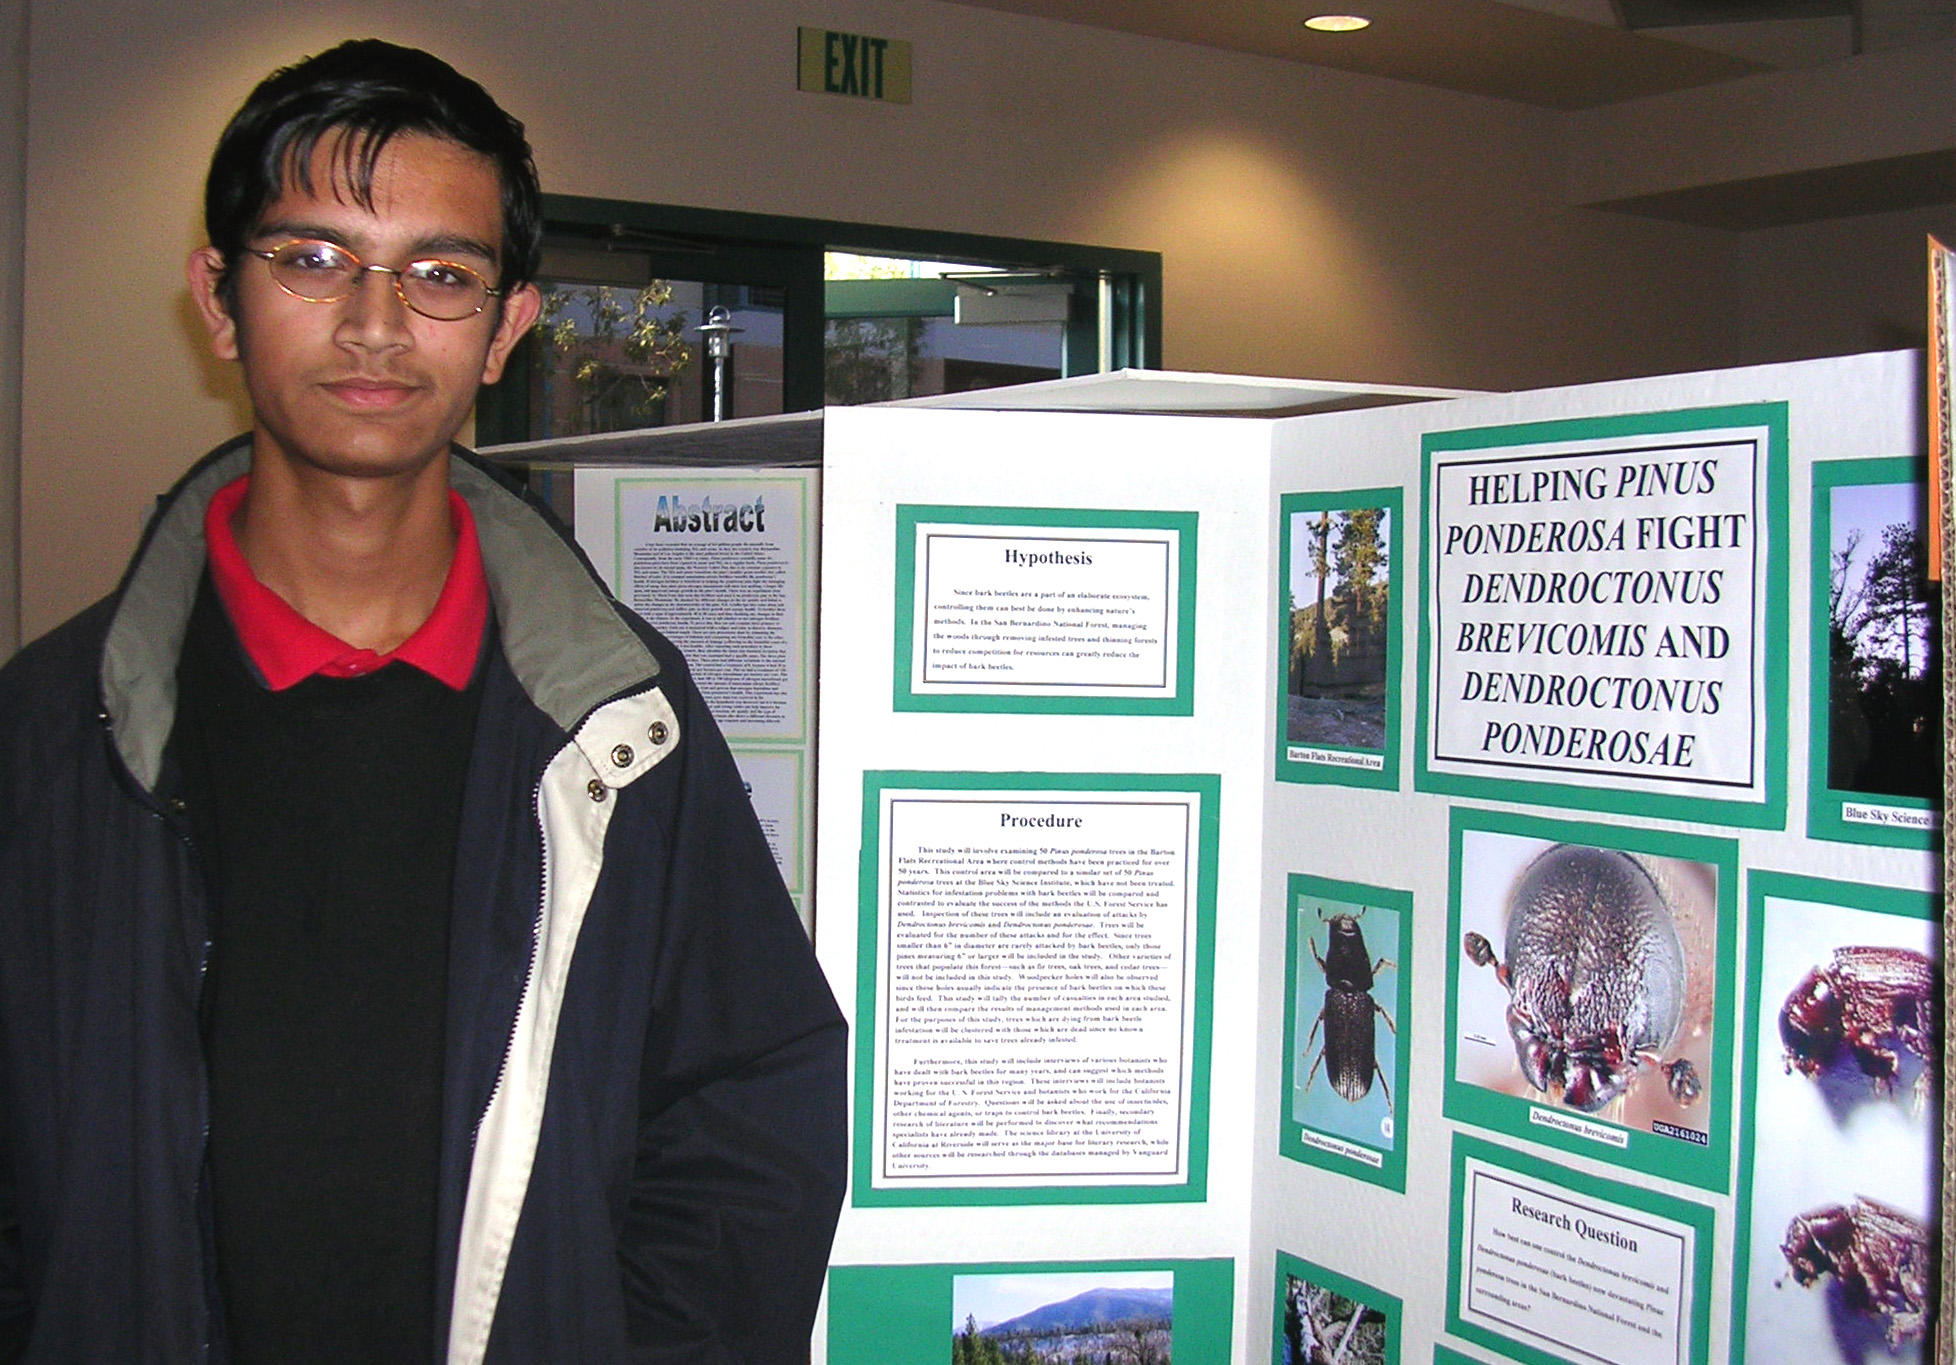 North High School student Daniel Kari is continuing his research on ...